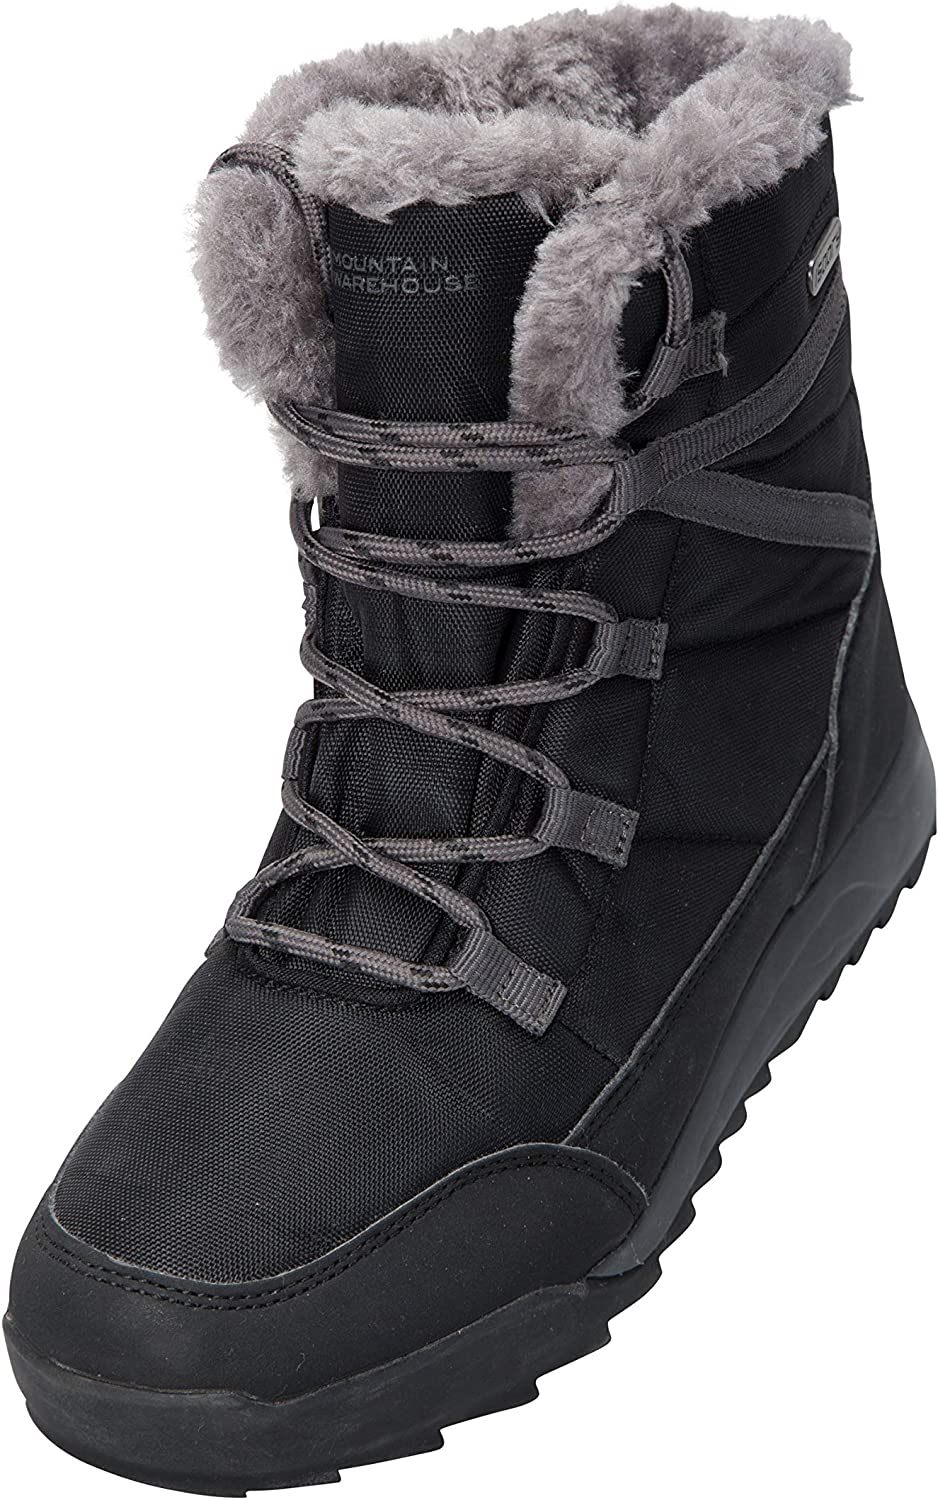 Mountain Warehouse Leisure Womens Snow Boots - Warm Winter Shoes